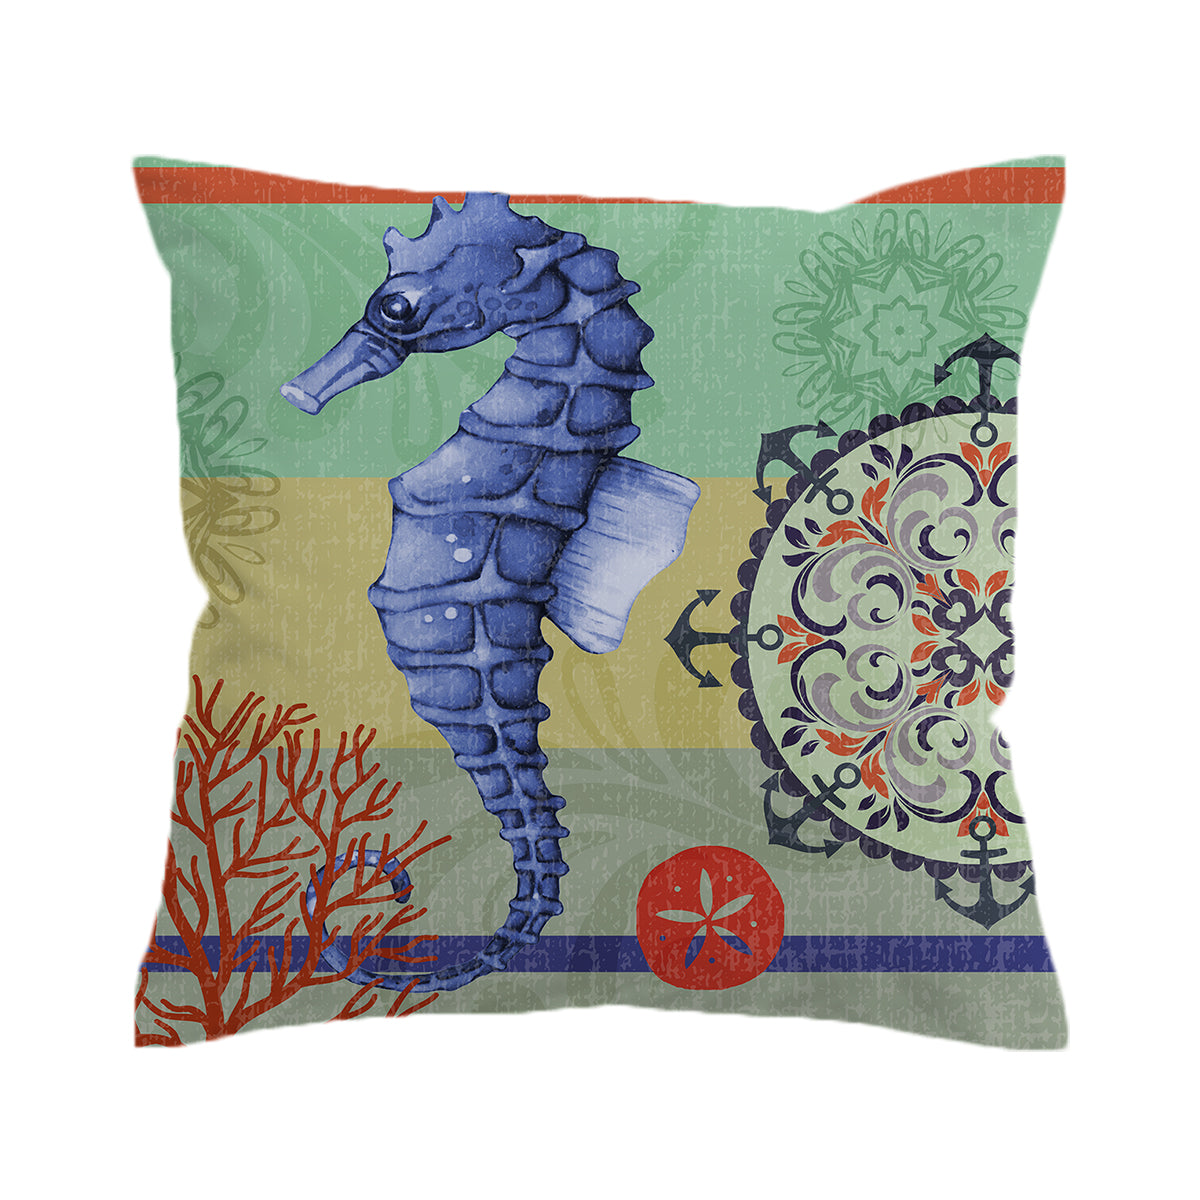 Seahorse Passion Pillow Cover